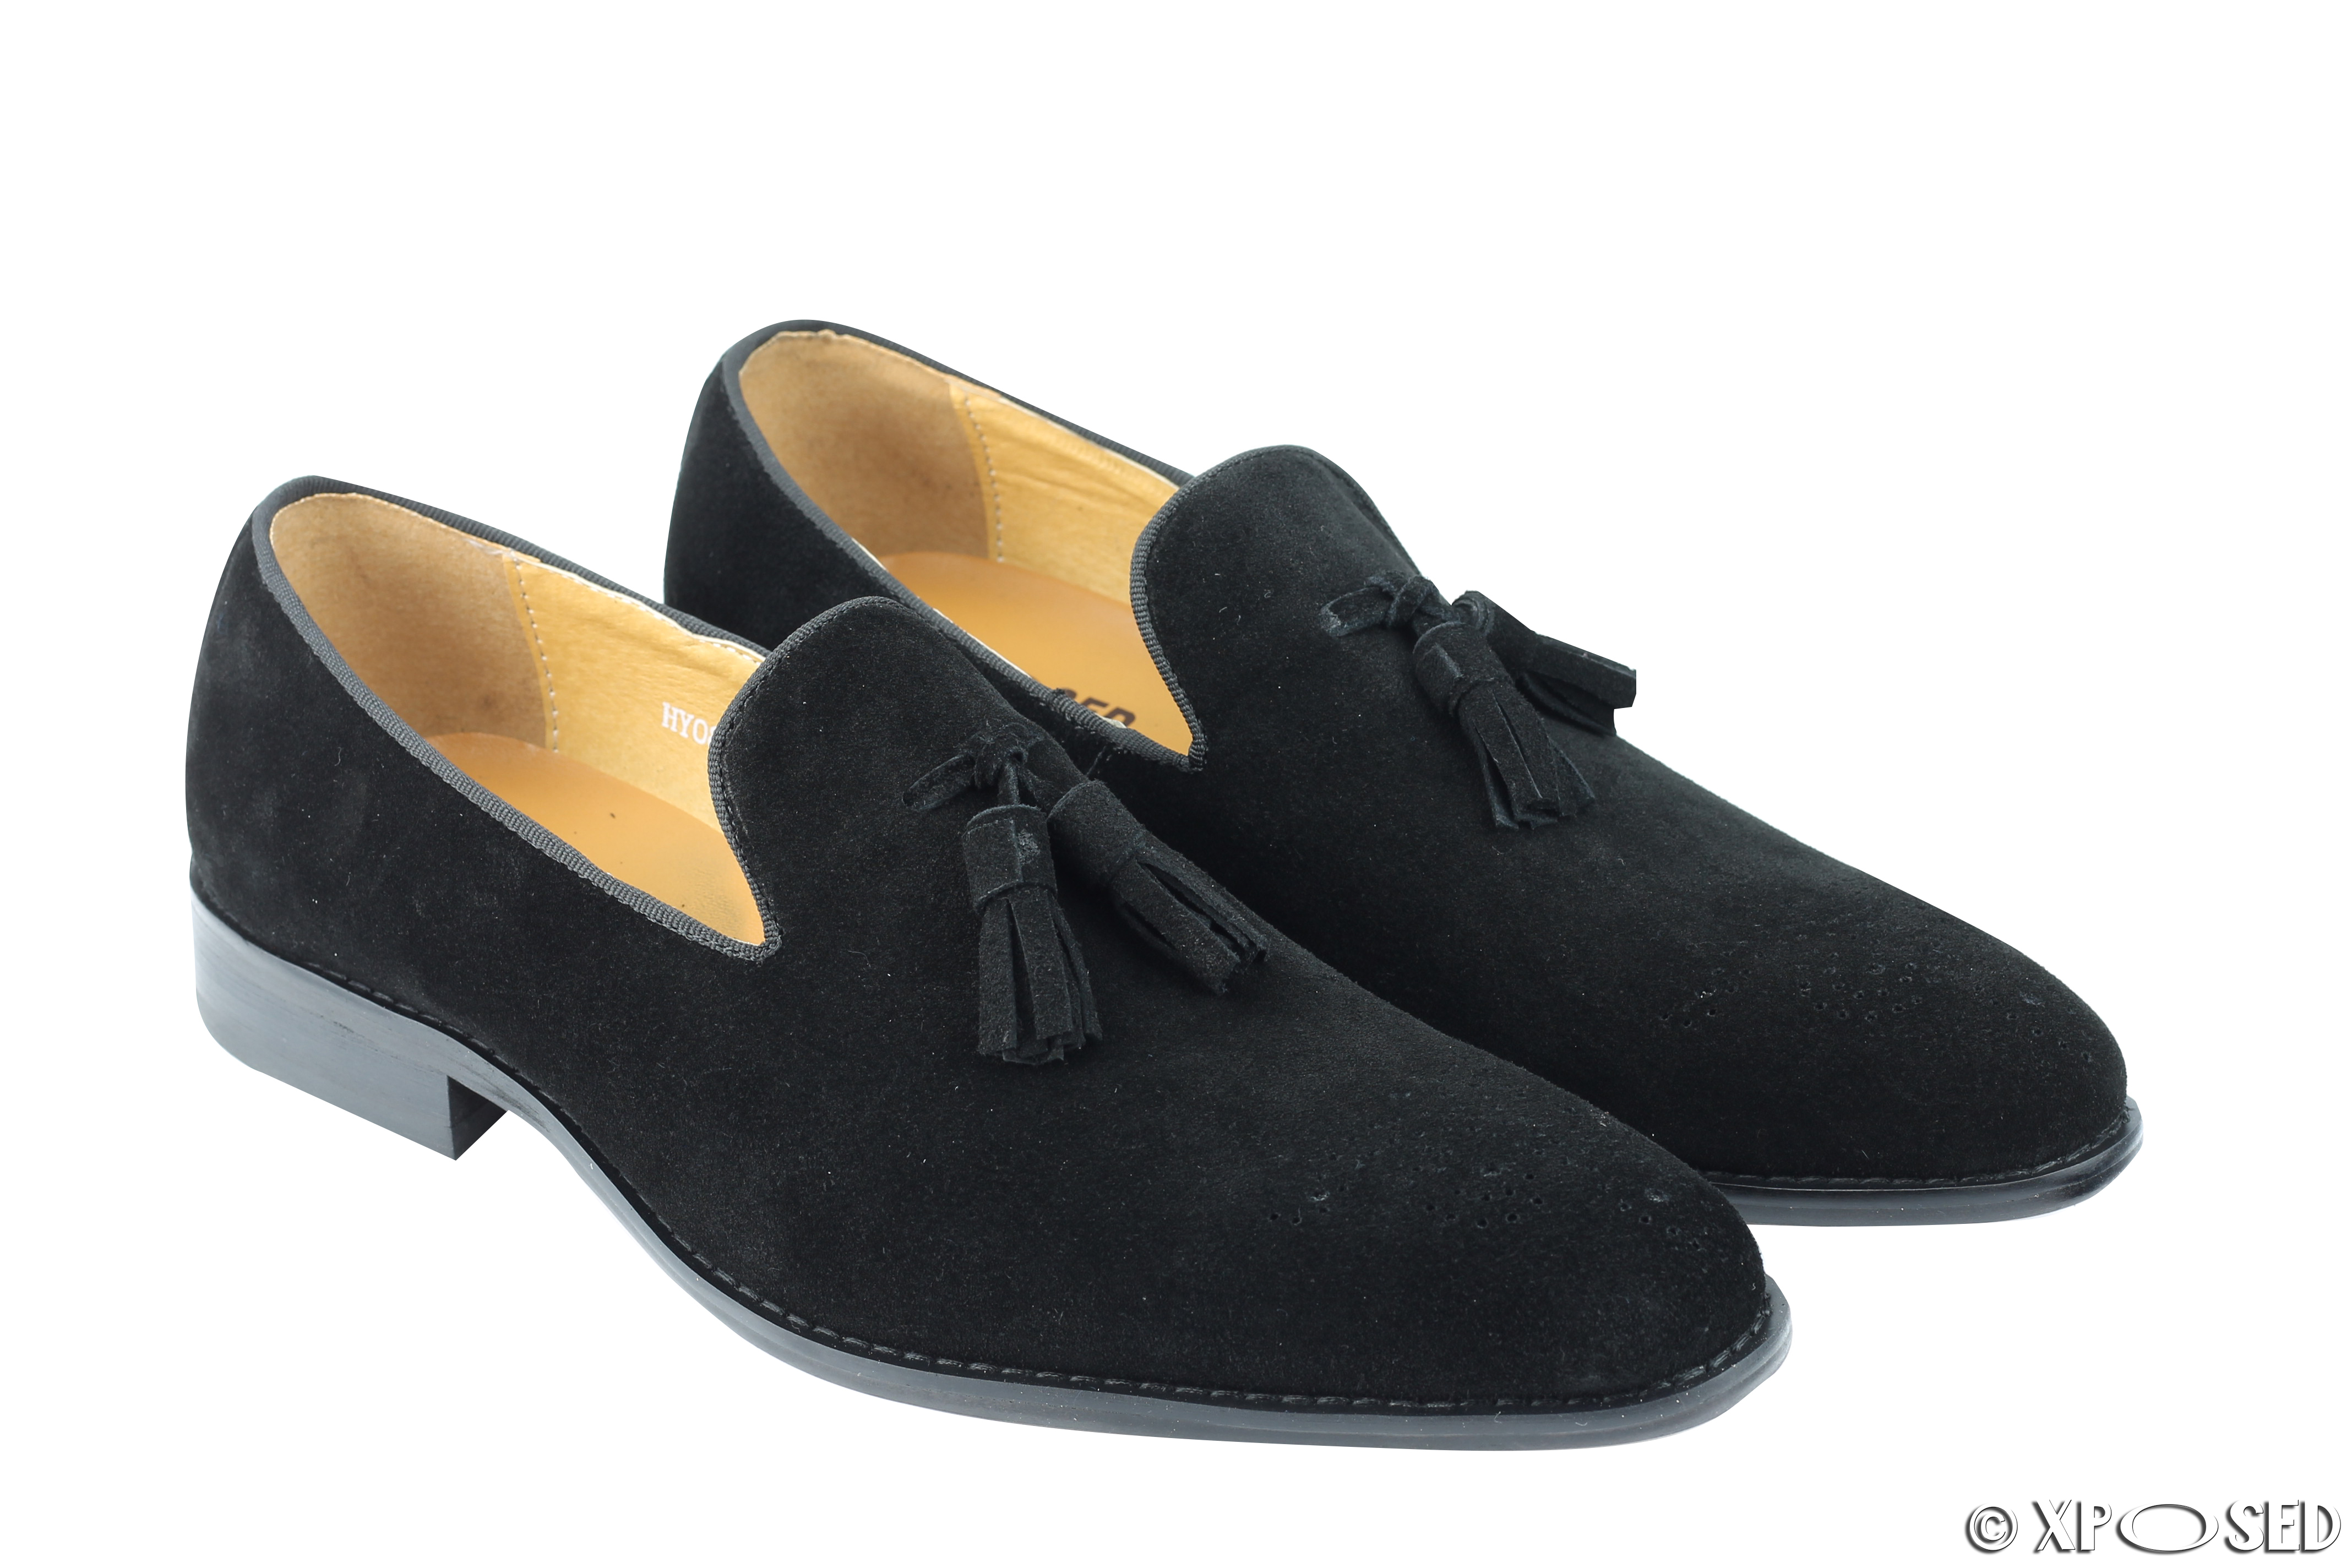 Tassel loafers are one of those styles and could just be the ultimate choice when it comes to comfort and style in footwear. Look for a great choice of loafers from Johnston & Murphy, Dockers and Bass.